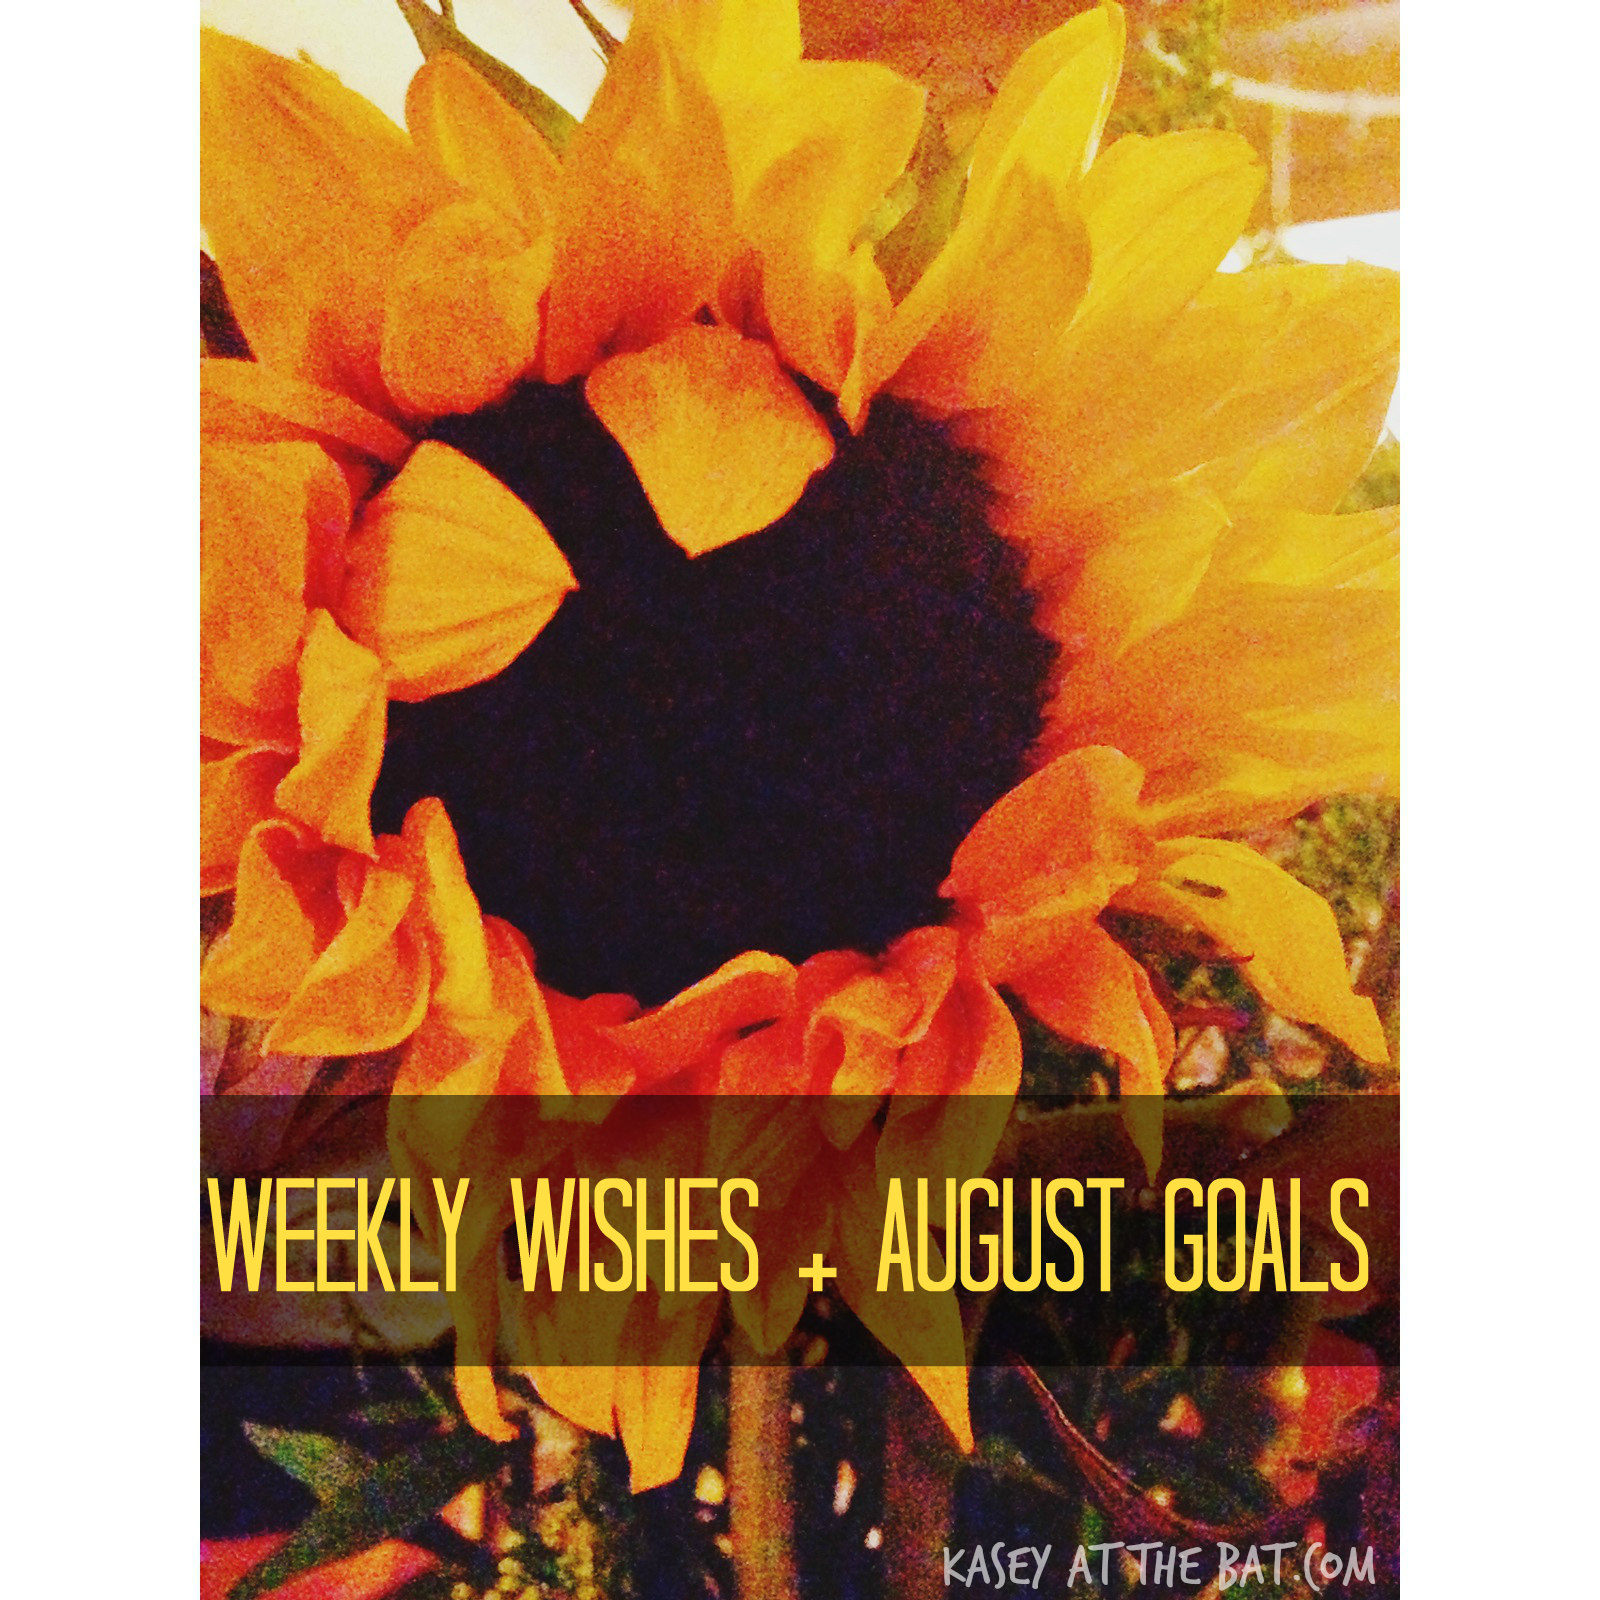 weekly wishes + august goals!